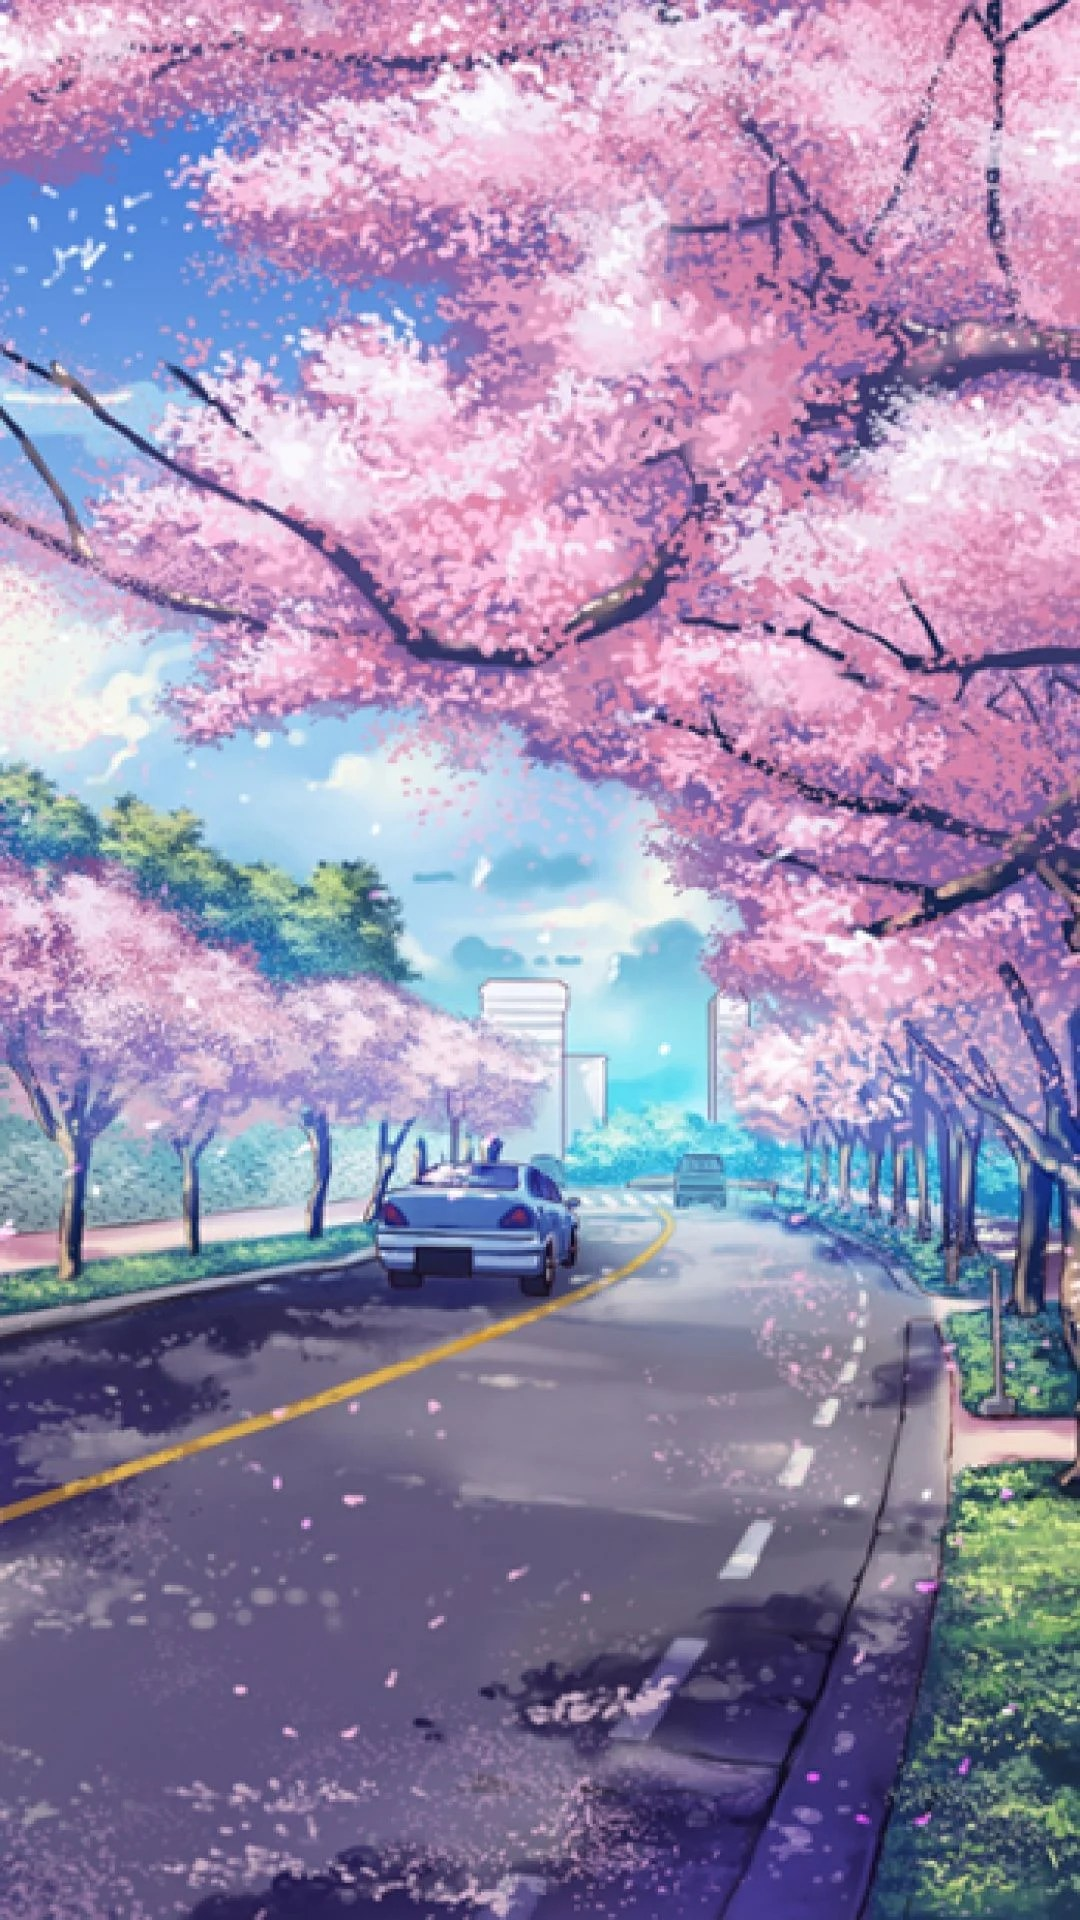 Anime Background Moving : anime, background, moving, Japanese, Anime, IPhone, Wallpapers, Backgrounds, WallpaperAccess